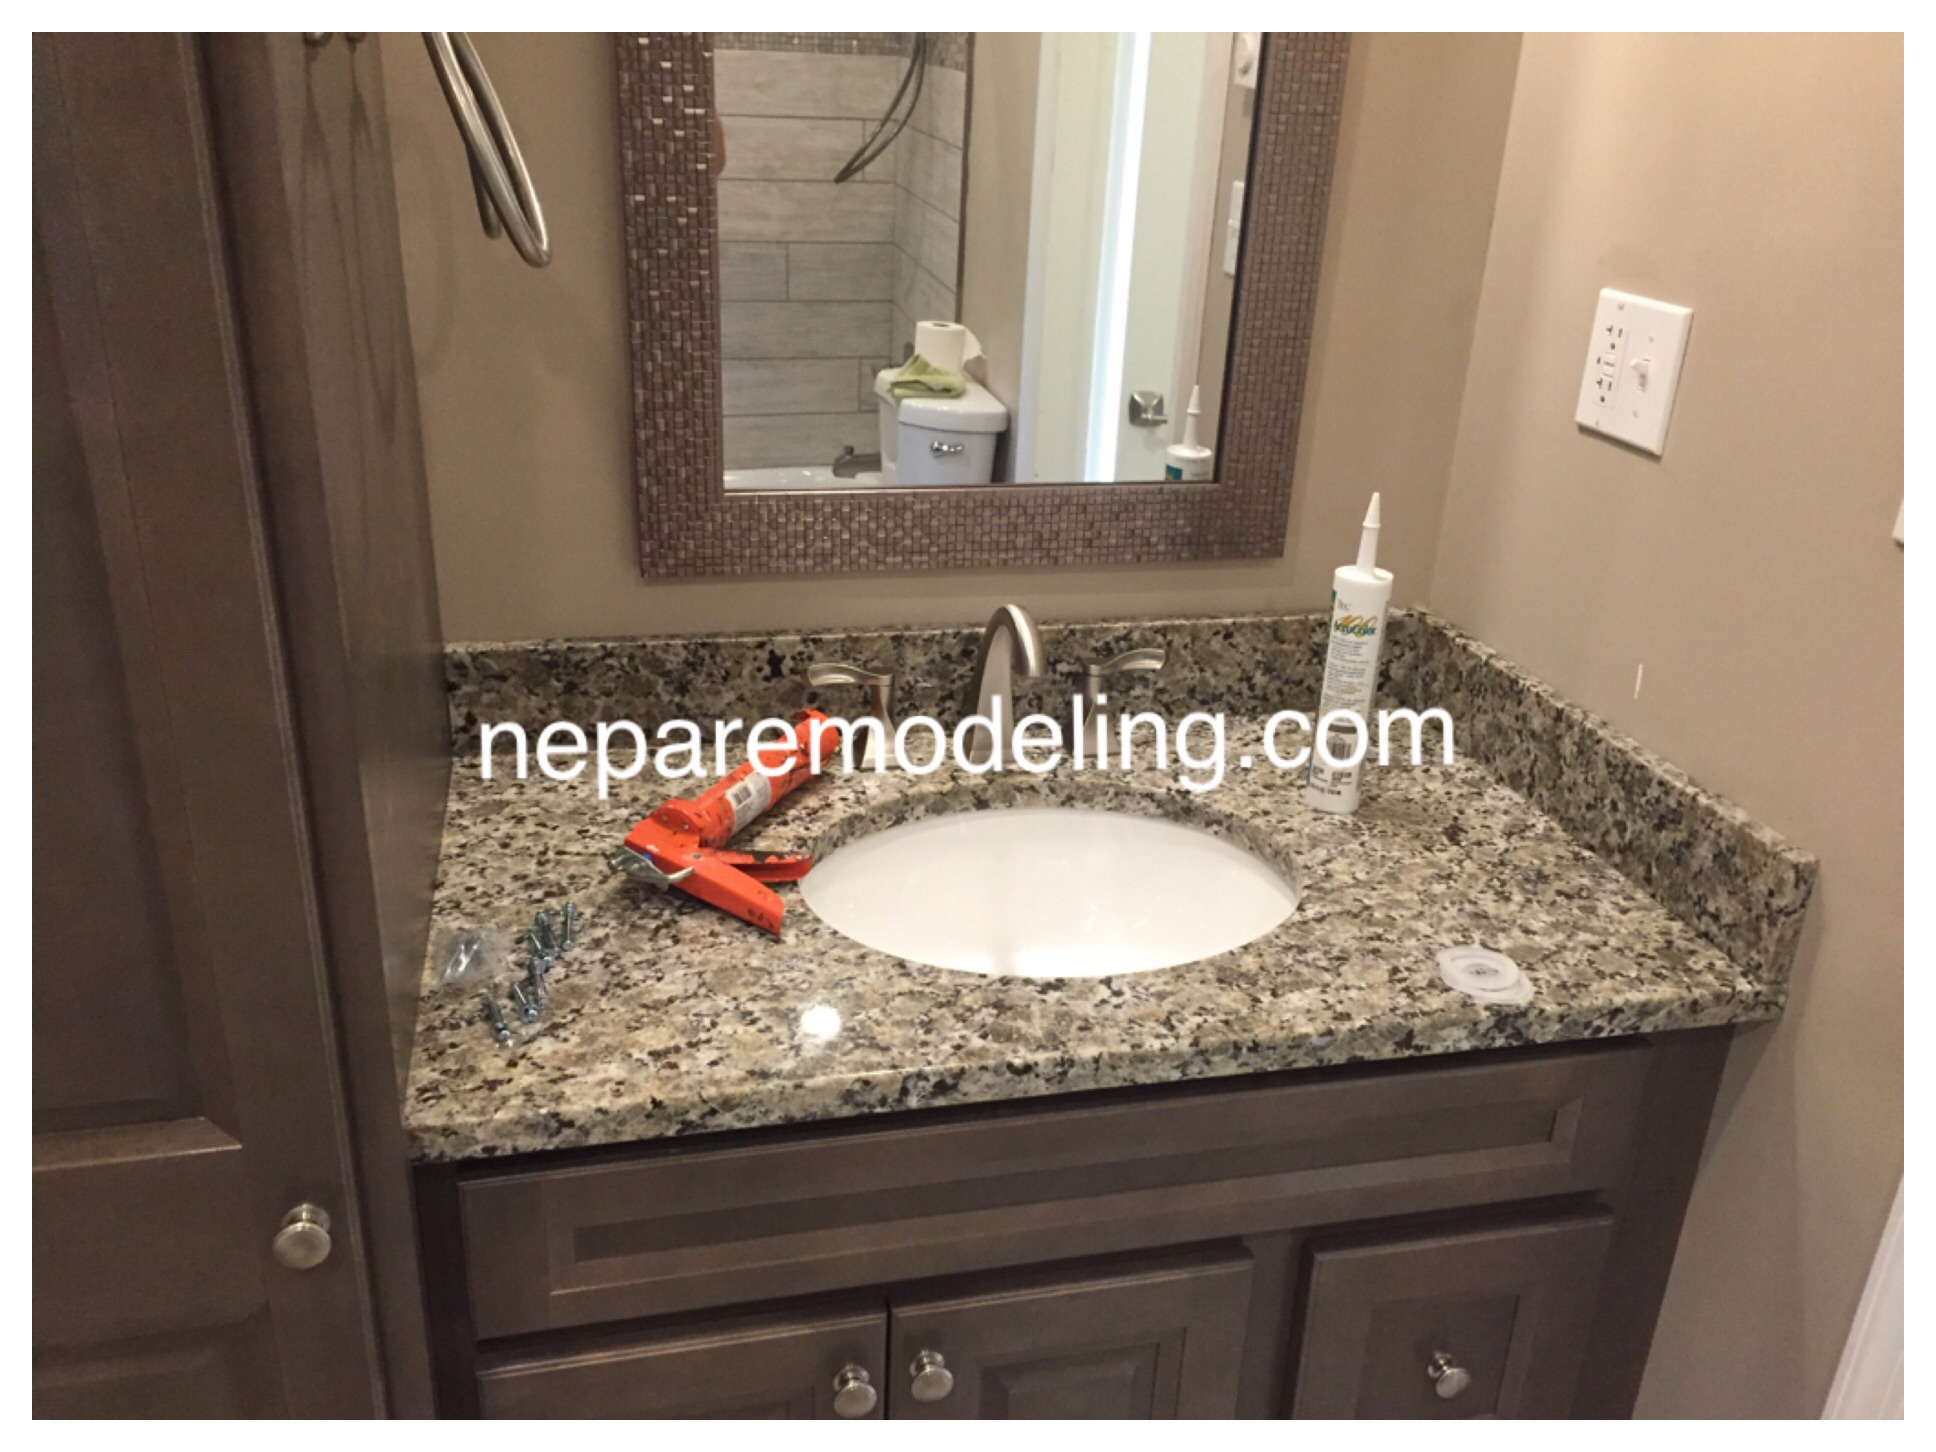 Granite counter with undermount sink.